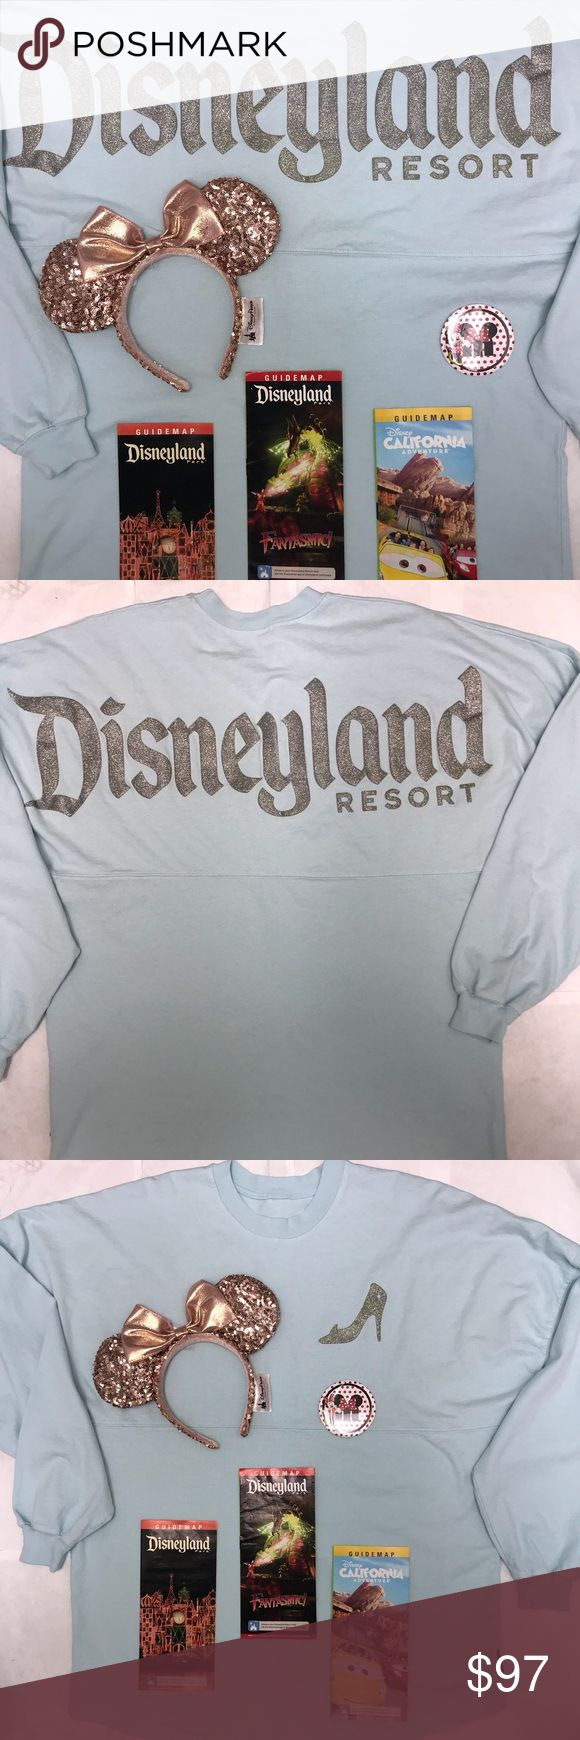 """DISNEYLAND EXCLUSIVE CINDERELLA SPIRIT JERSEY EARS """"NOW AVAILABLE JUST RELEASED""""   DISNEYLAND (2018) """"PRINCESS SERIES"""" SPIRIT JERSEY'S ...... THIS IS THE DISNEYLAND (2018) """"CINDERELLA VERSION"""" SPIRIT JERSEY ......  WE HAVE MOST SIZES AVAILABLE : ( SMALL - MEDIUM - LARGE - XLARGE - XXL ) .... ** IMPORTANT NOTICE** PLEASE MESSAGE ME FIRST BEFORE MAKING YOUR PURCHASE TO CONFIRM YOUR SIZE AVAILABILITY .. PLUS WITH THIS """"SPECIAL OFFER"""" YOU ALSO GET (1) DISNEYLAND """"ROSE GOLD"""" MINNIE MOUSE EARS YOU…"""